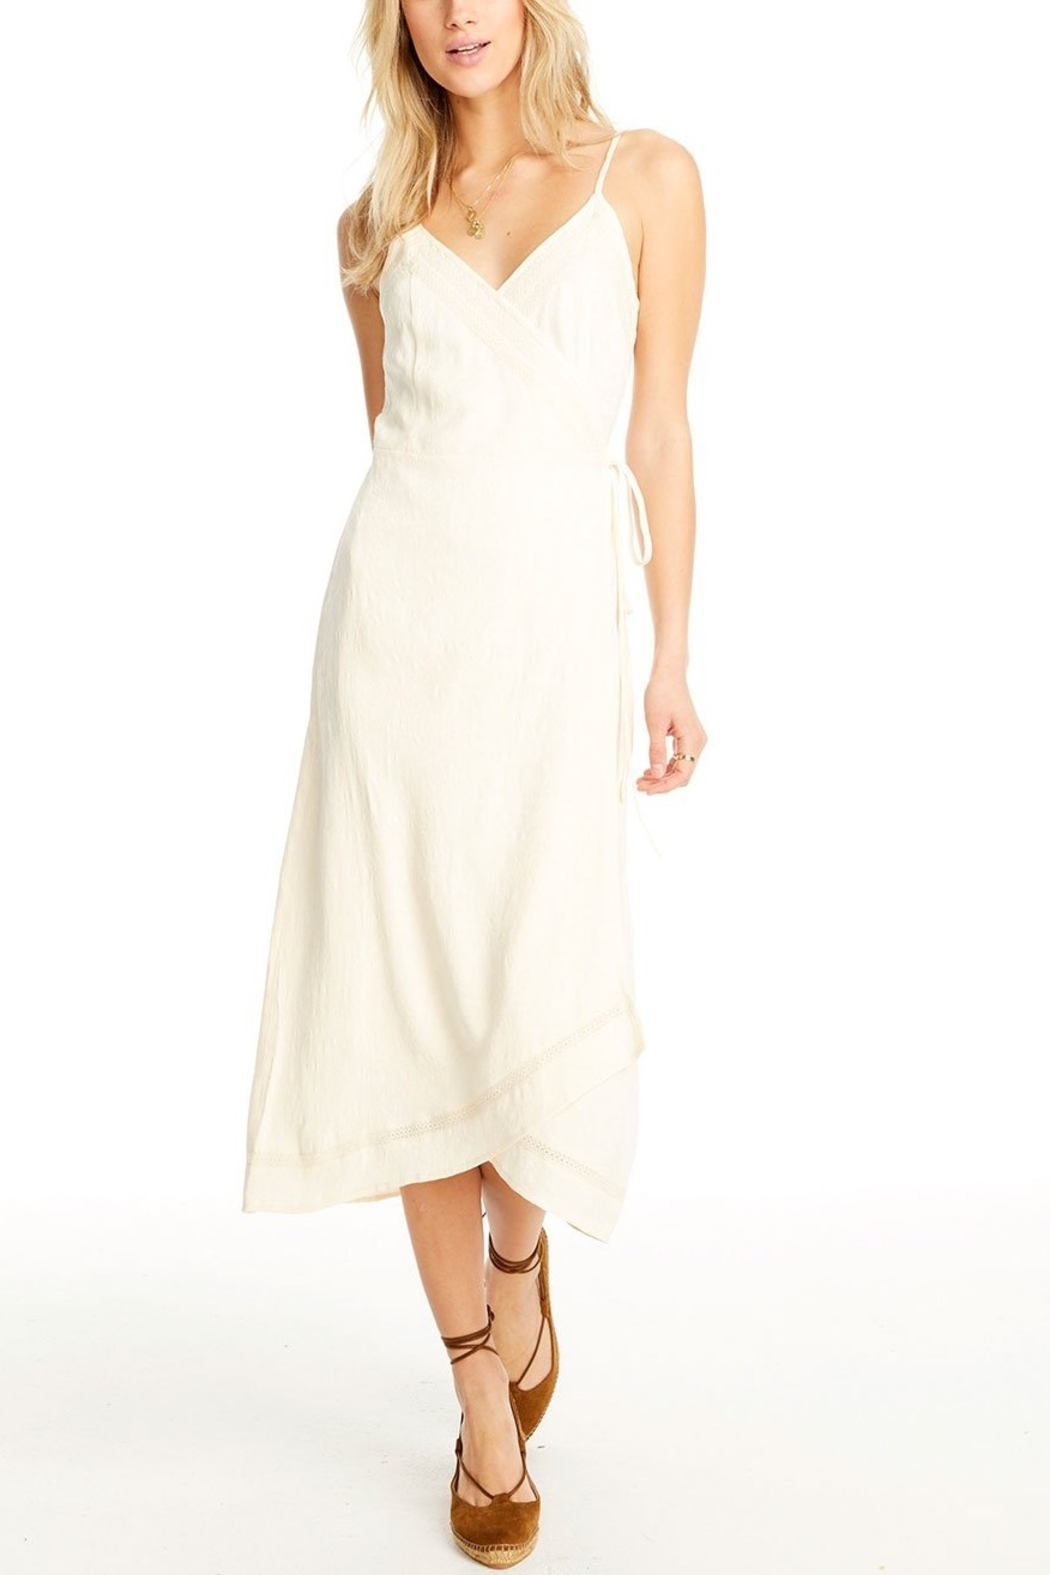 Saltwater Luxe Molly Wrap Midi Dress - Main Image